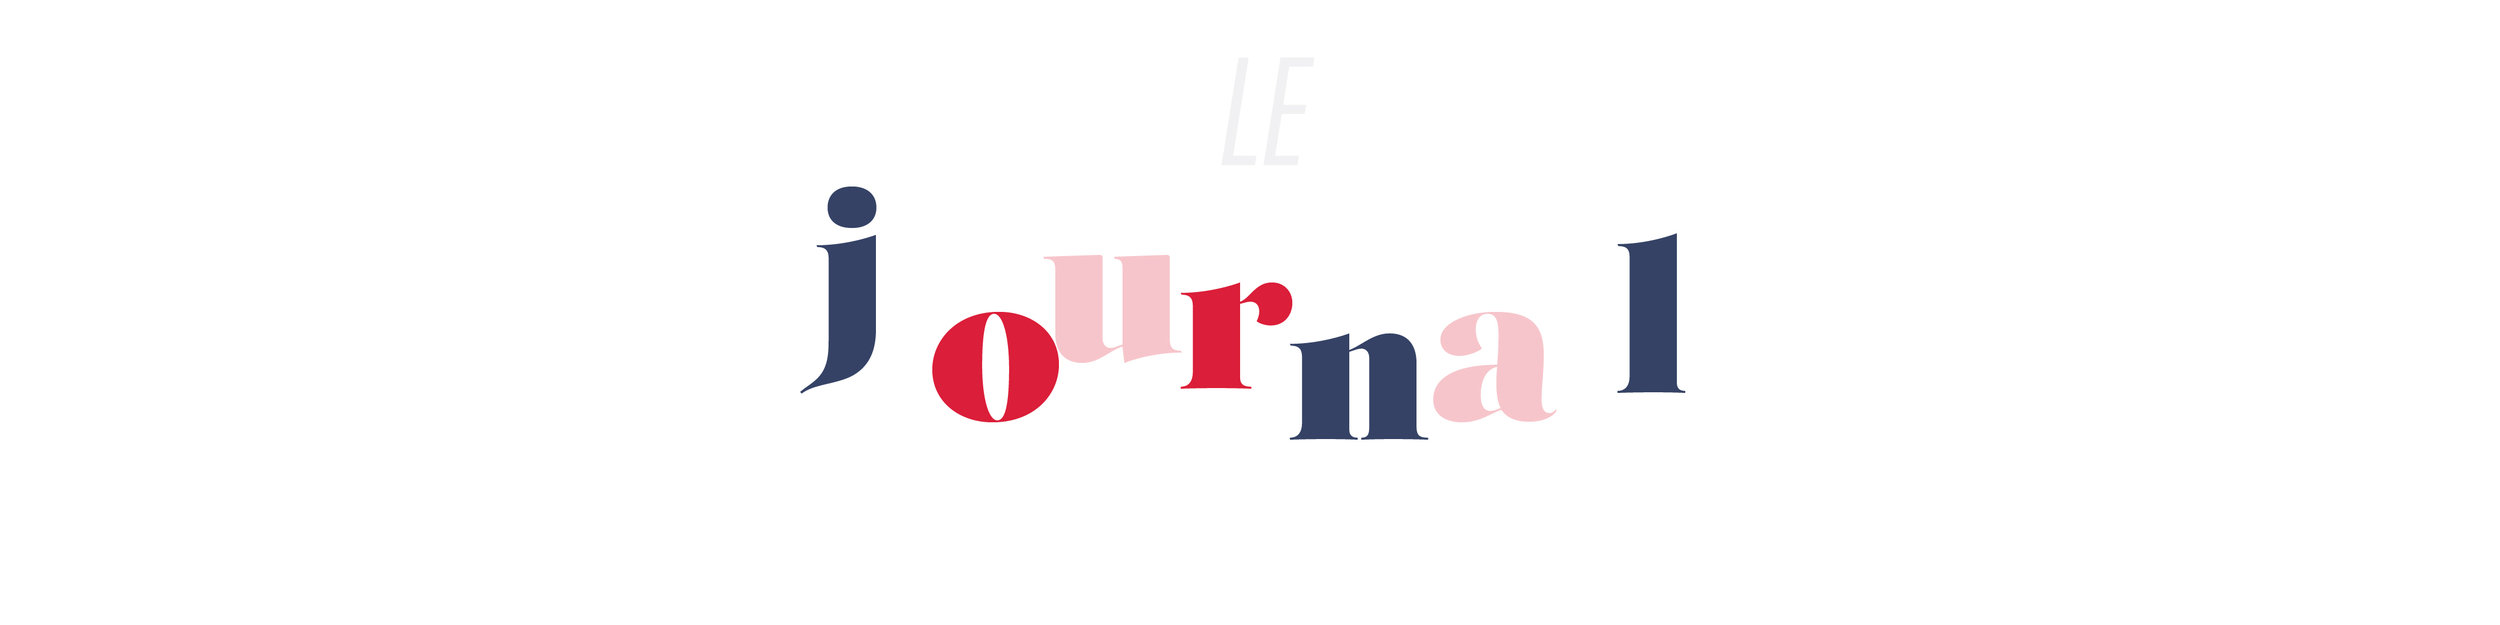 LE_JOURNAL_LOGO_02.jpg